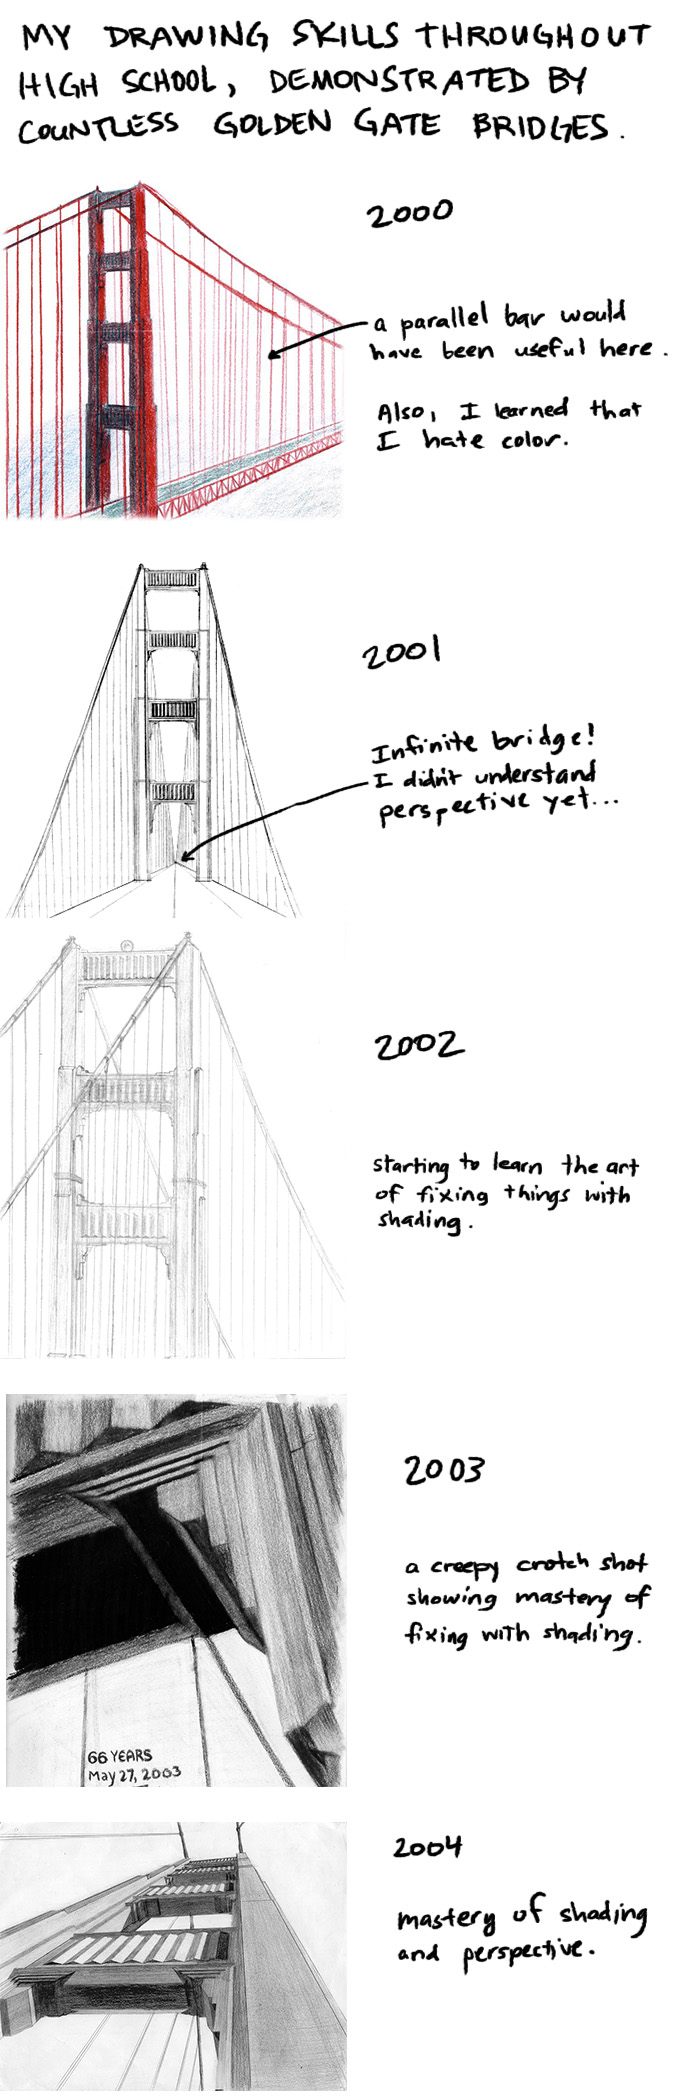 a compilation of golden gate bridge drawings